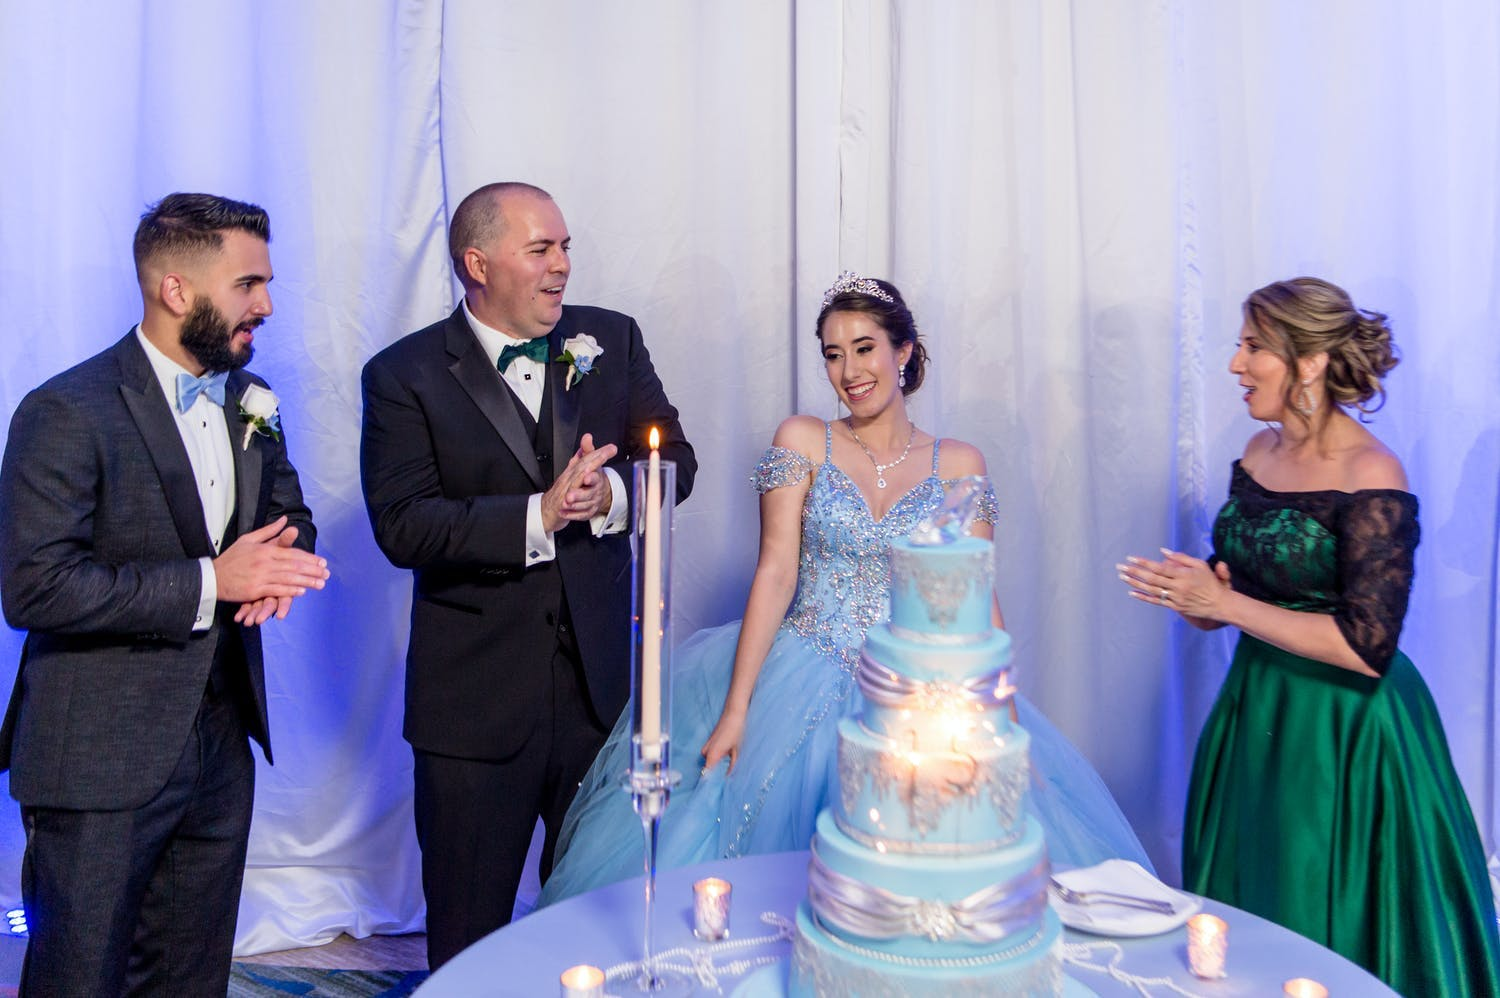 15 candle ceremony for quinceañera as she's watched by chambelan and parents | PartySlate